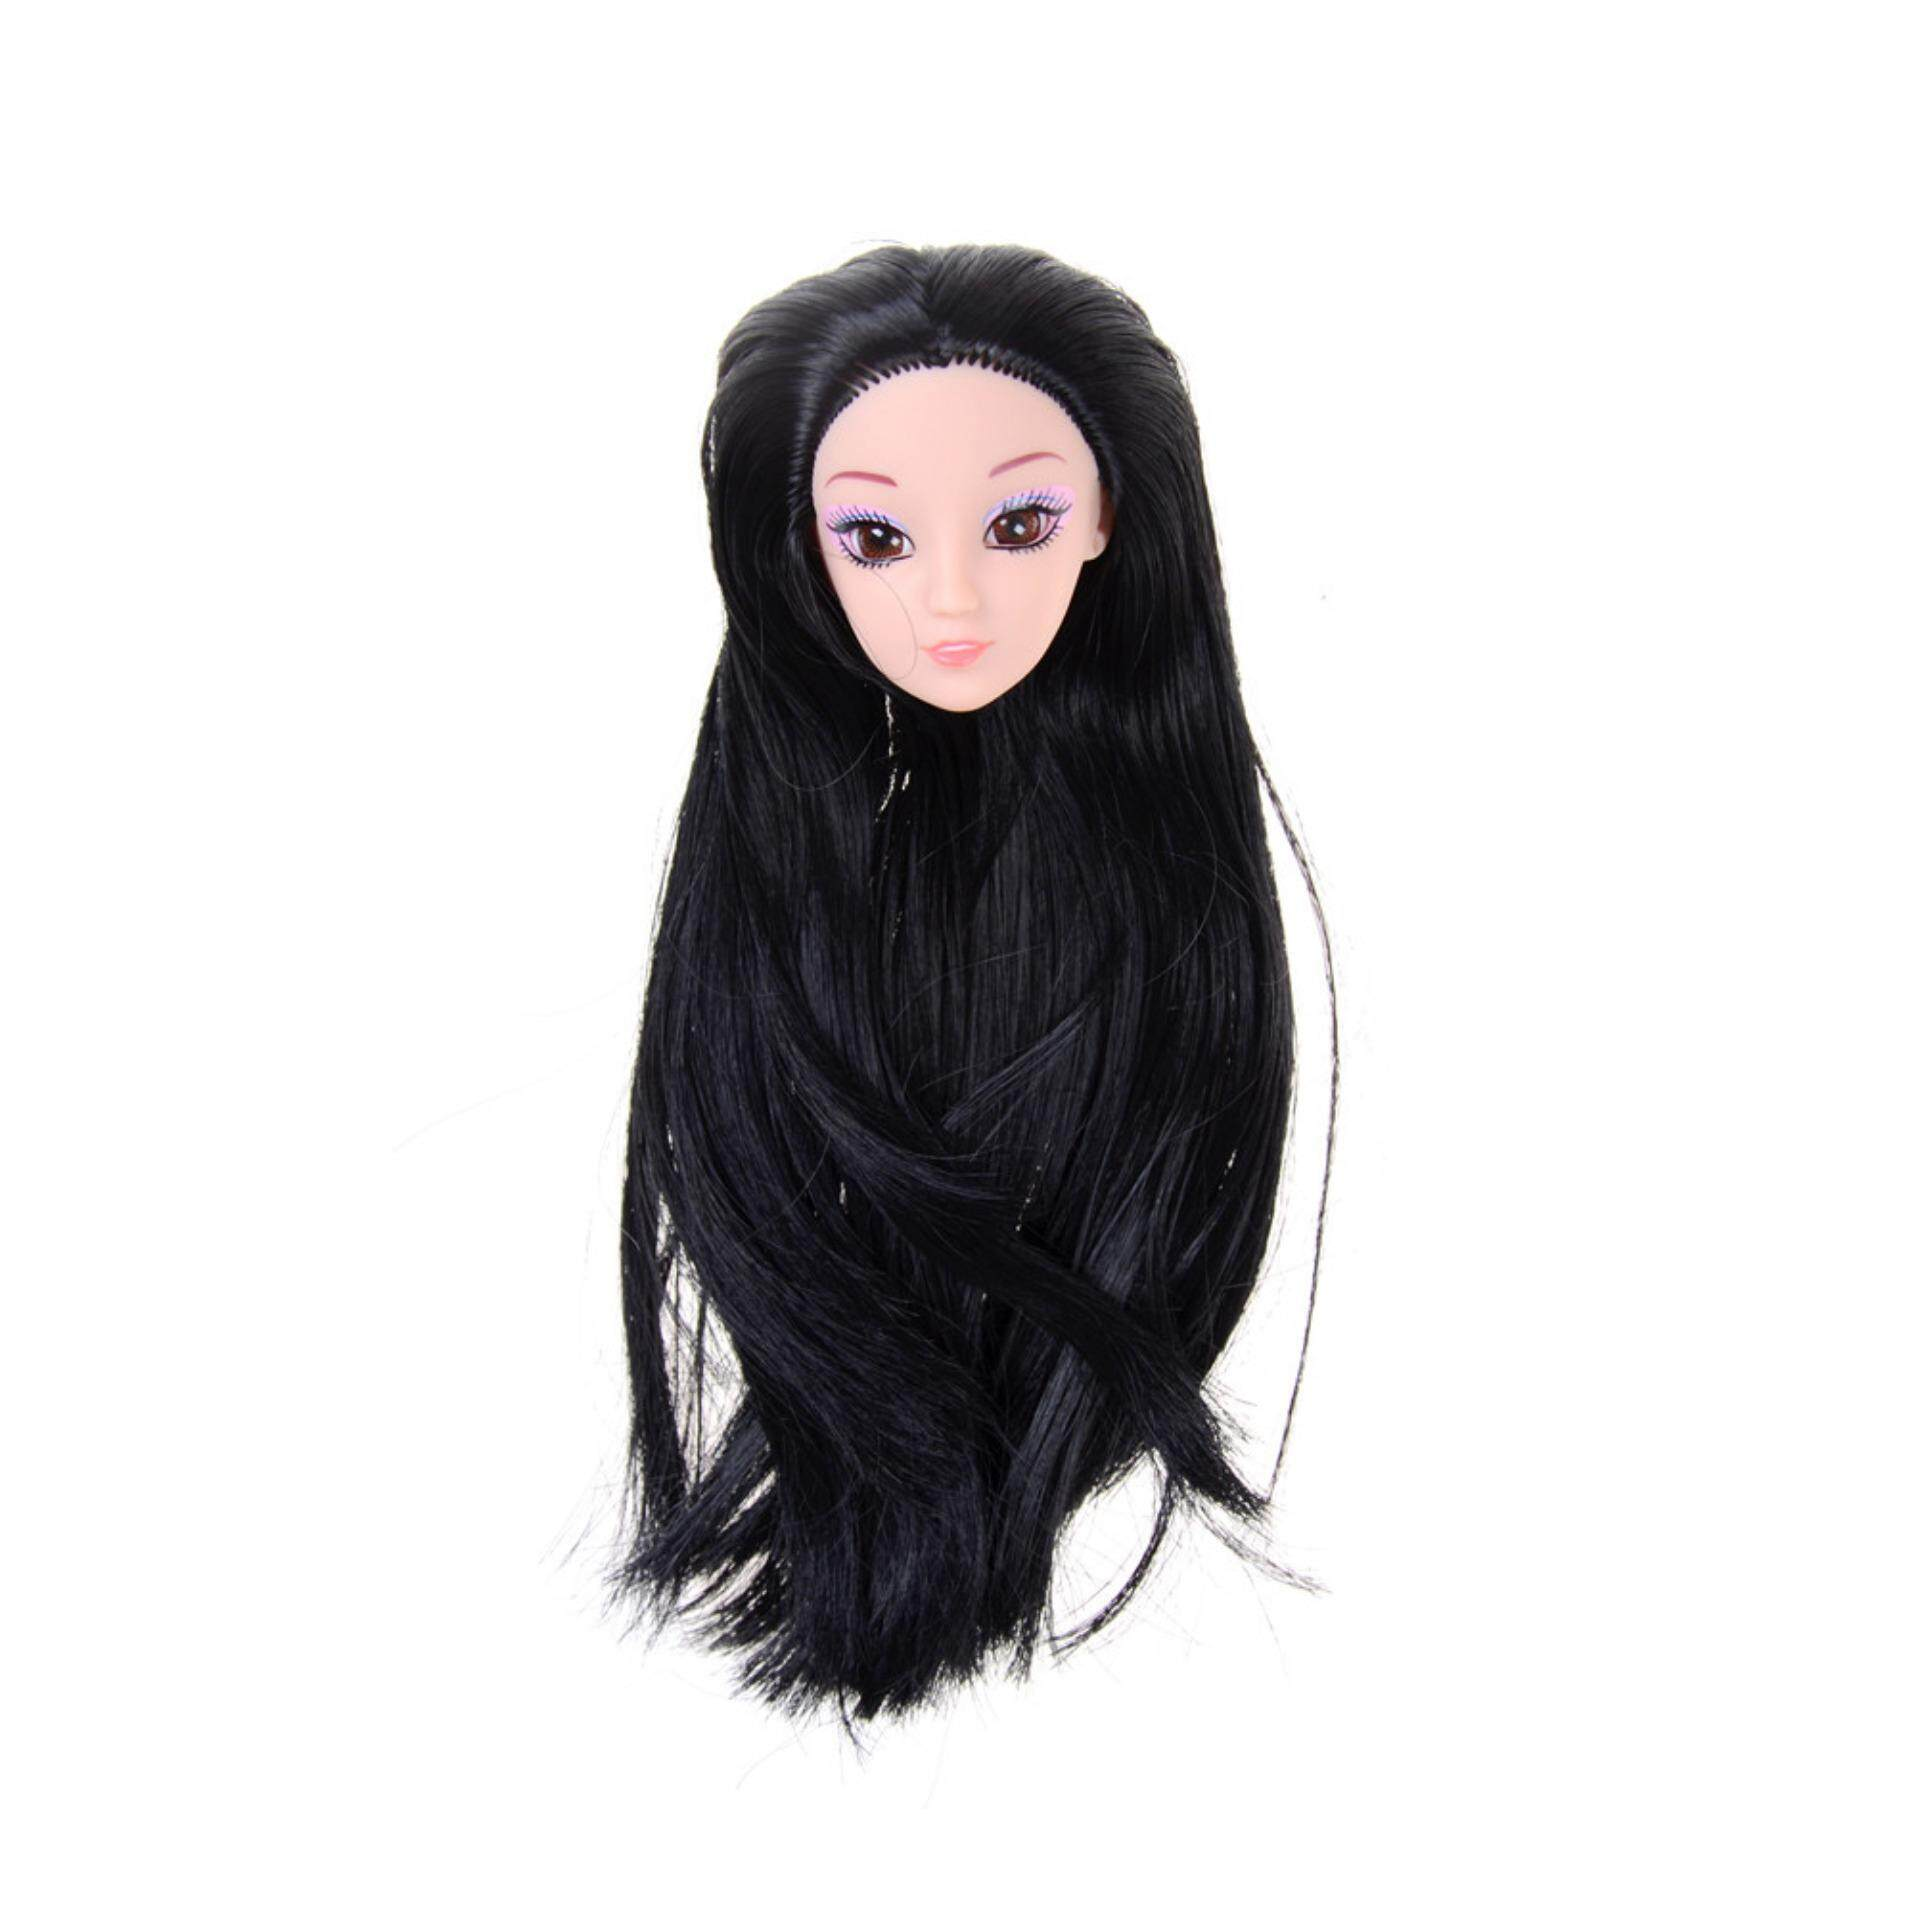 5ec35c5de7 3D Eyes Head Nake Joints Body Doll Head Toys For Barbie Dolls Girls Gift  Black - intl